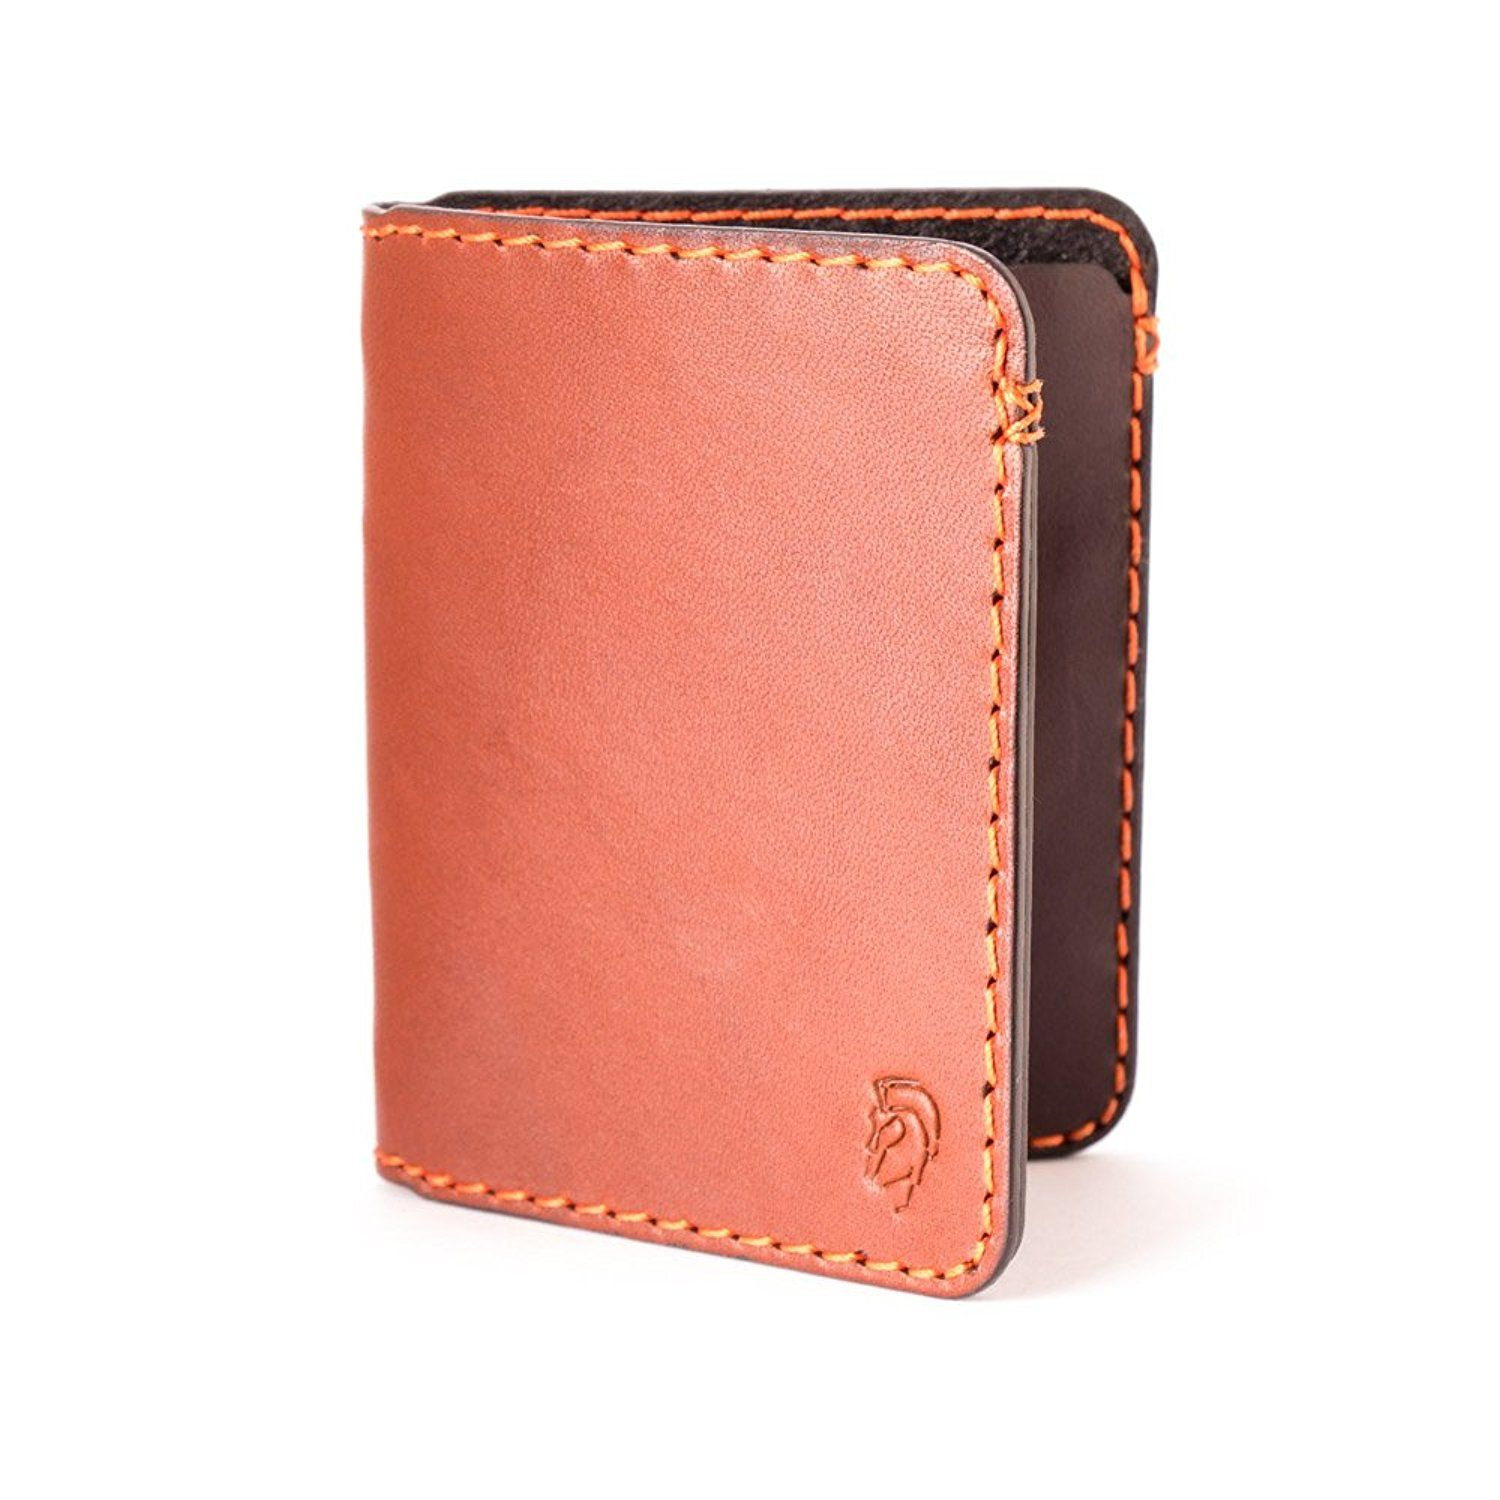 96a66a22fc39 312 TEXN Bi fold Wallet -- You can get more details by clicking on ...